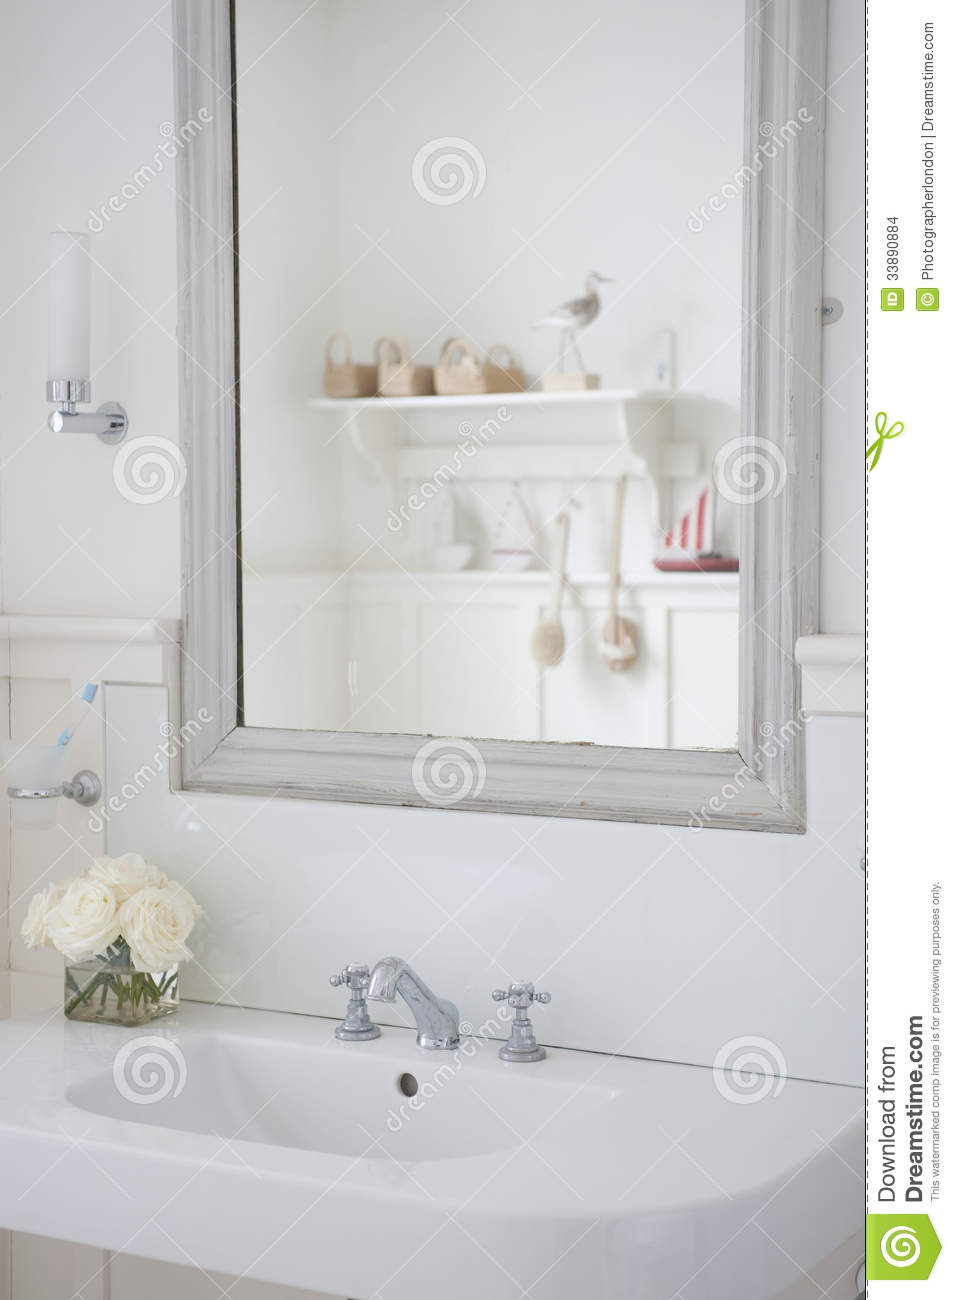 Mirror above bathroom sink stock images image 33890884